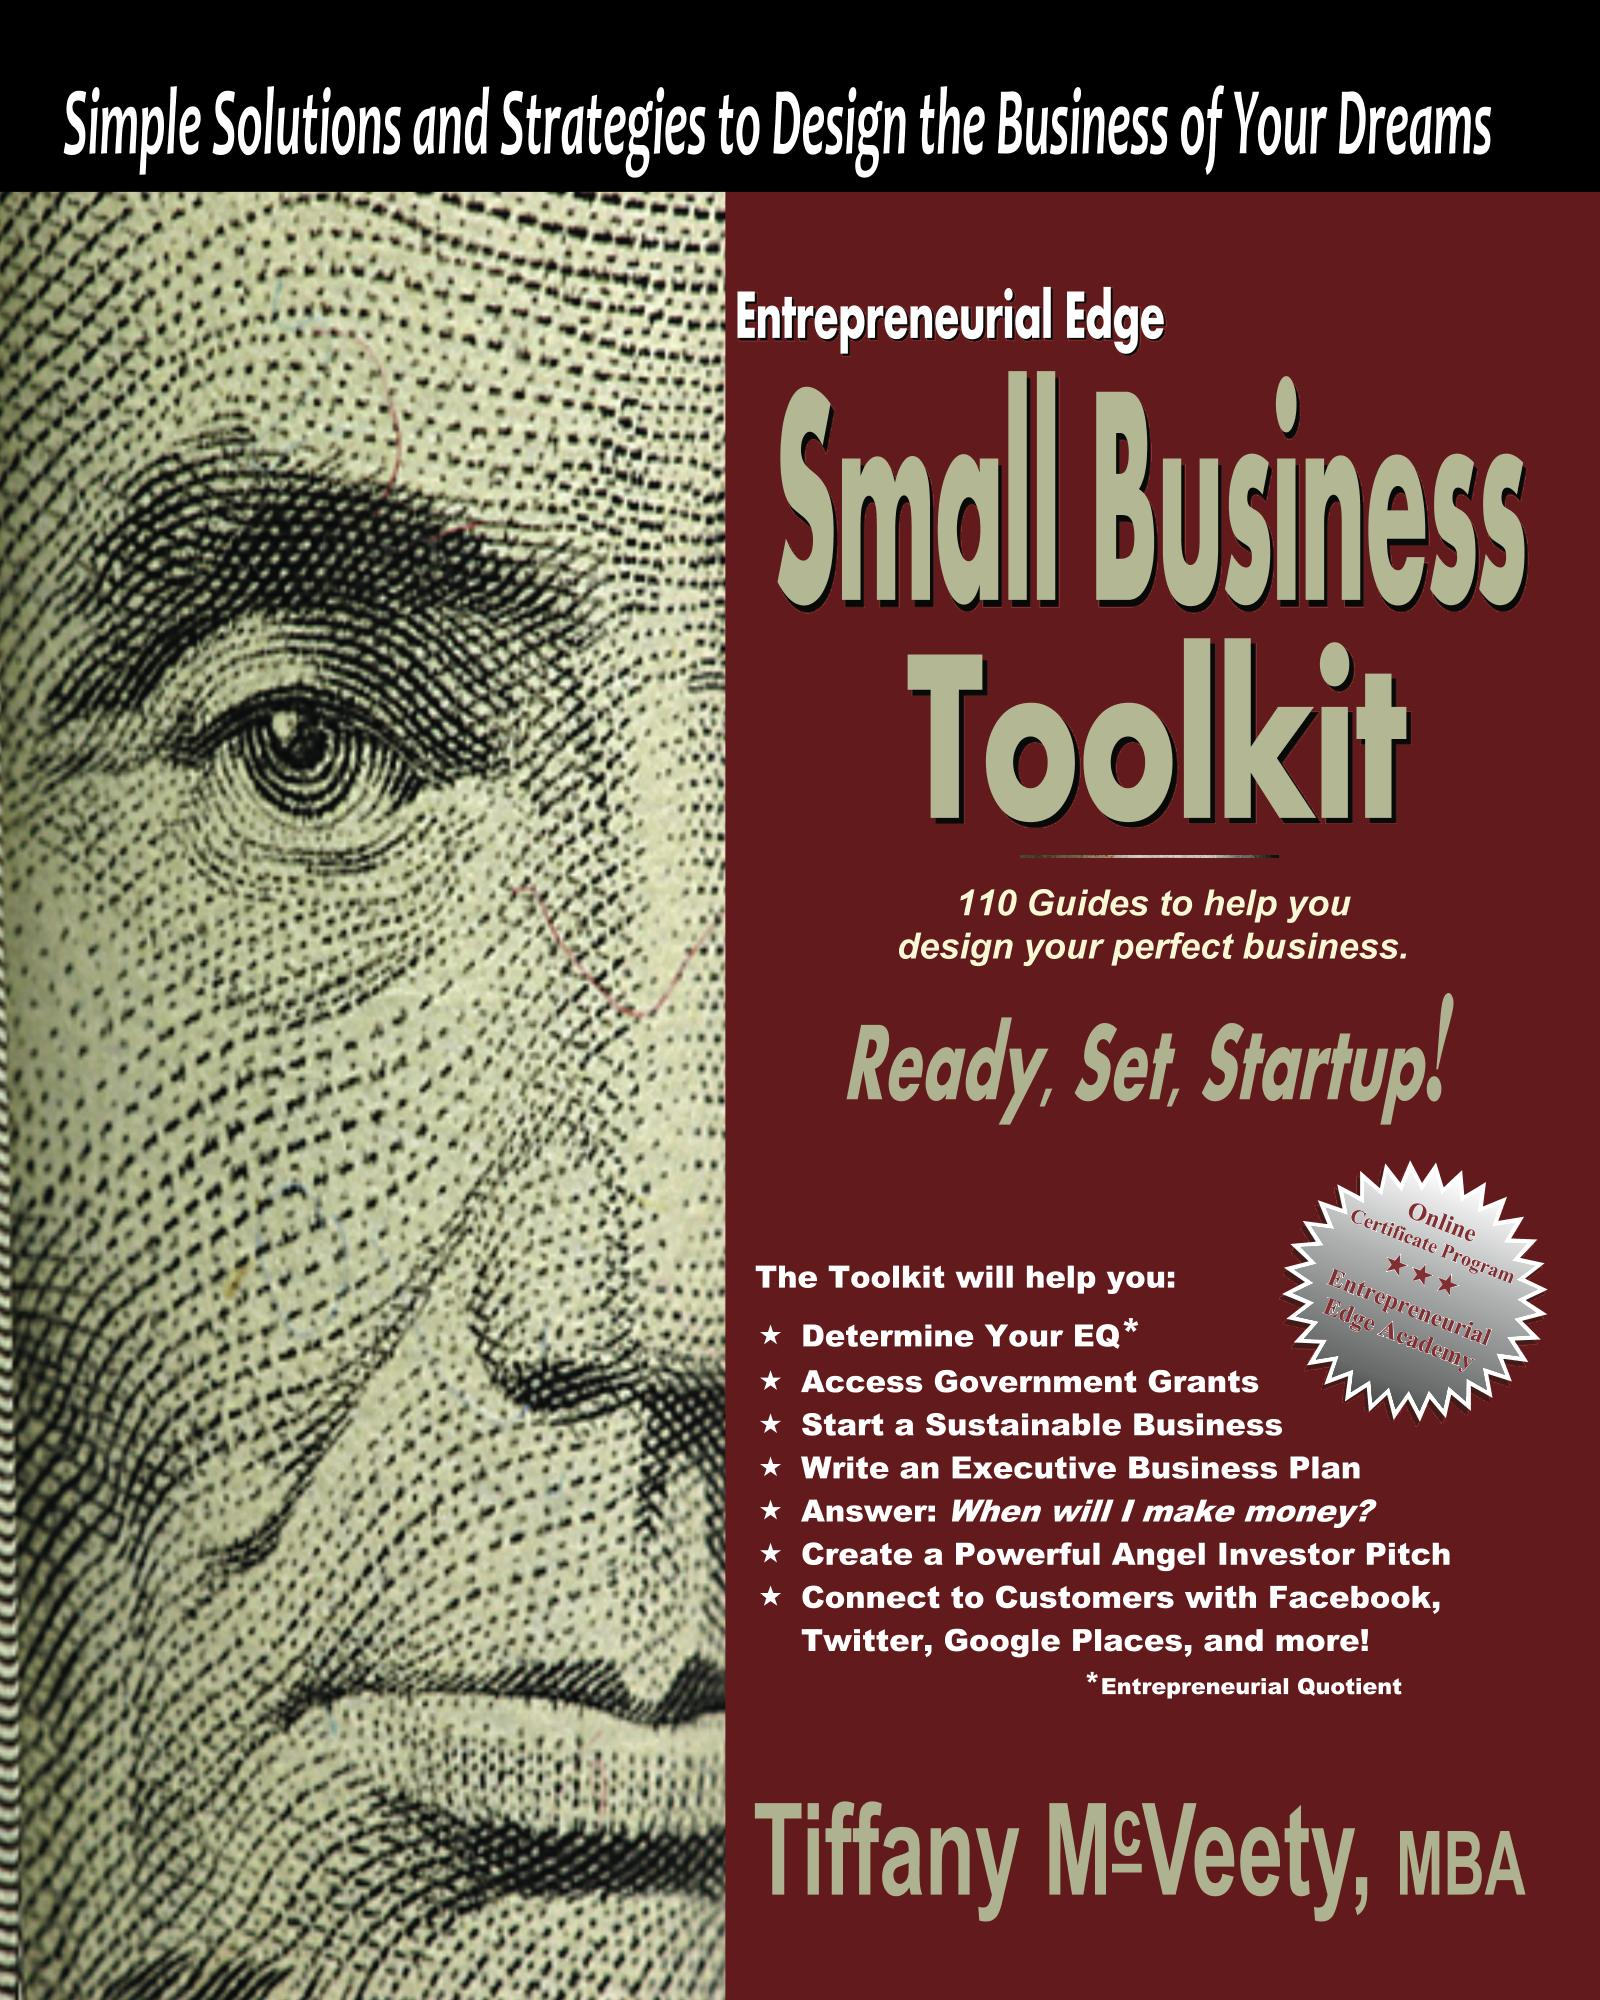 Can'twait?  Get the Small Business Toolkit HERE.